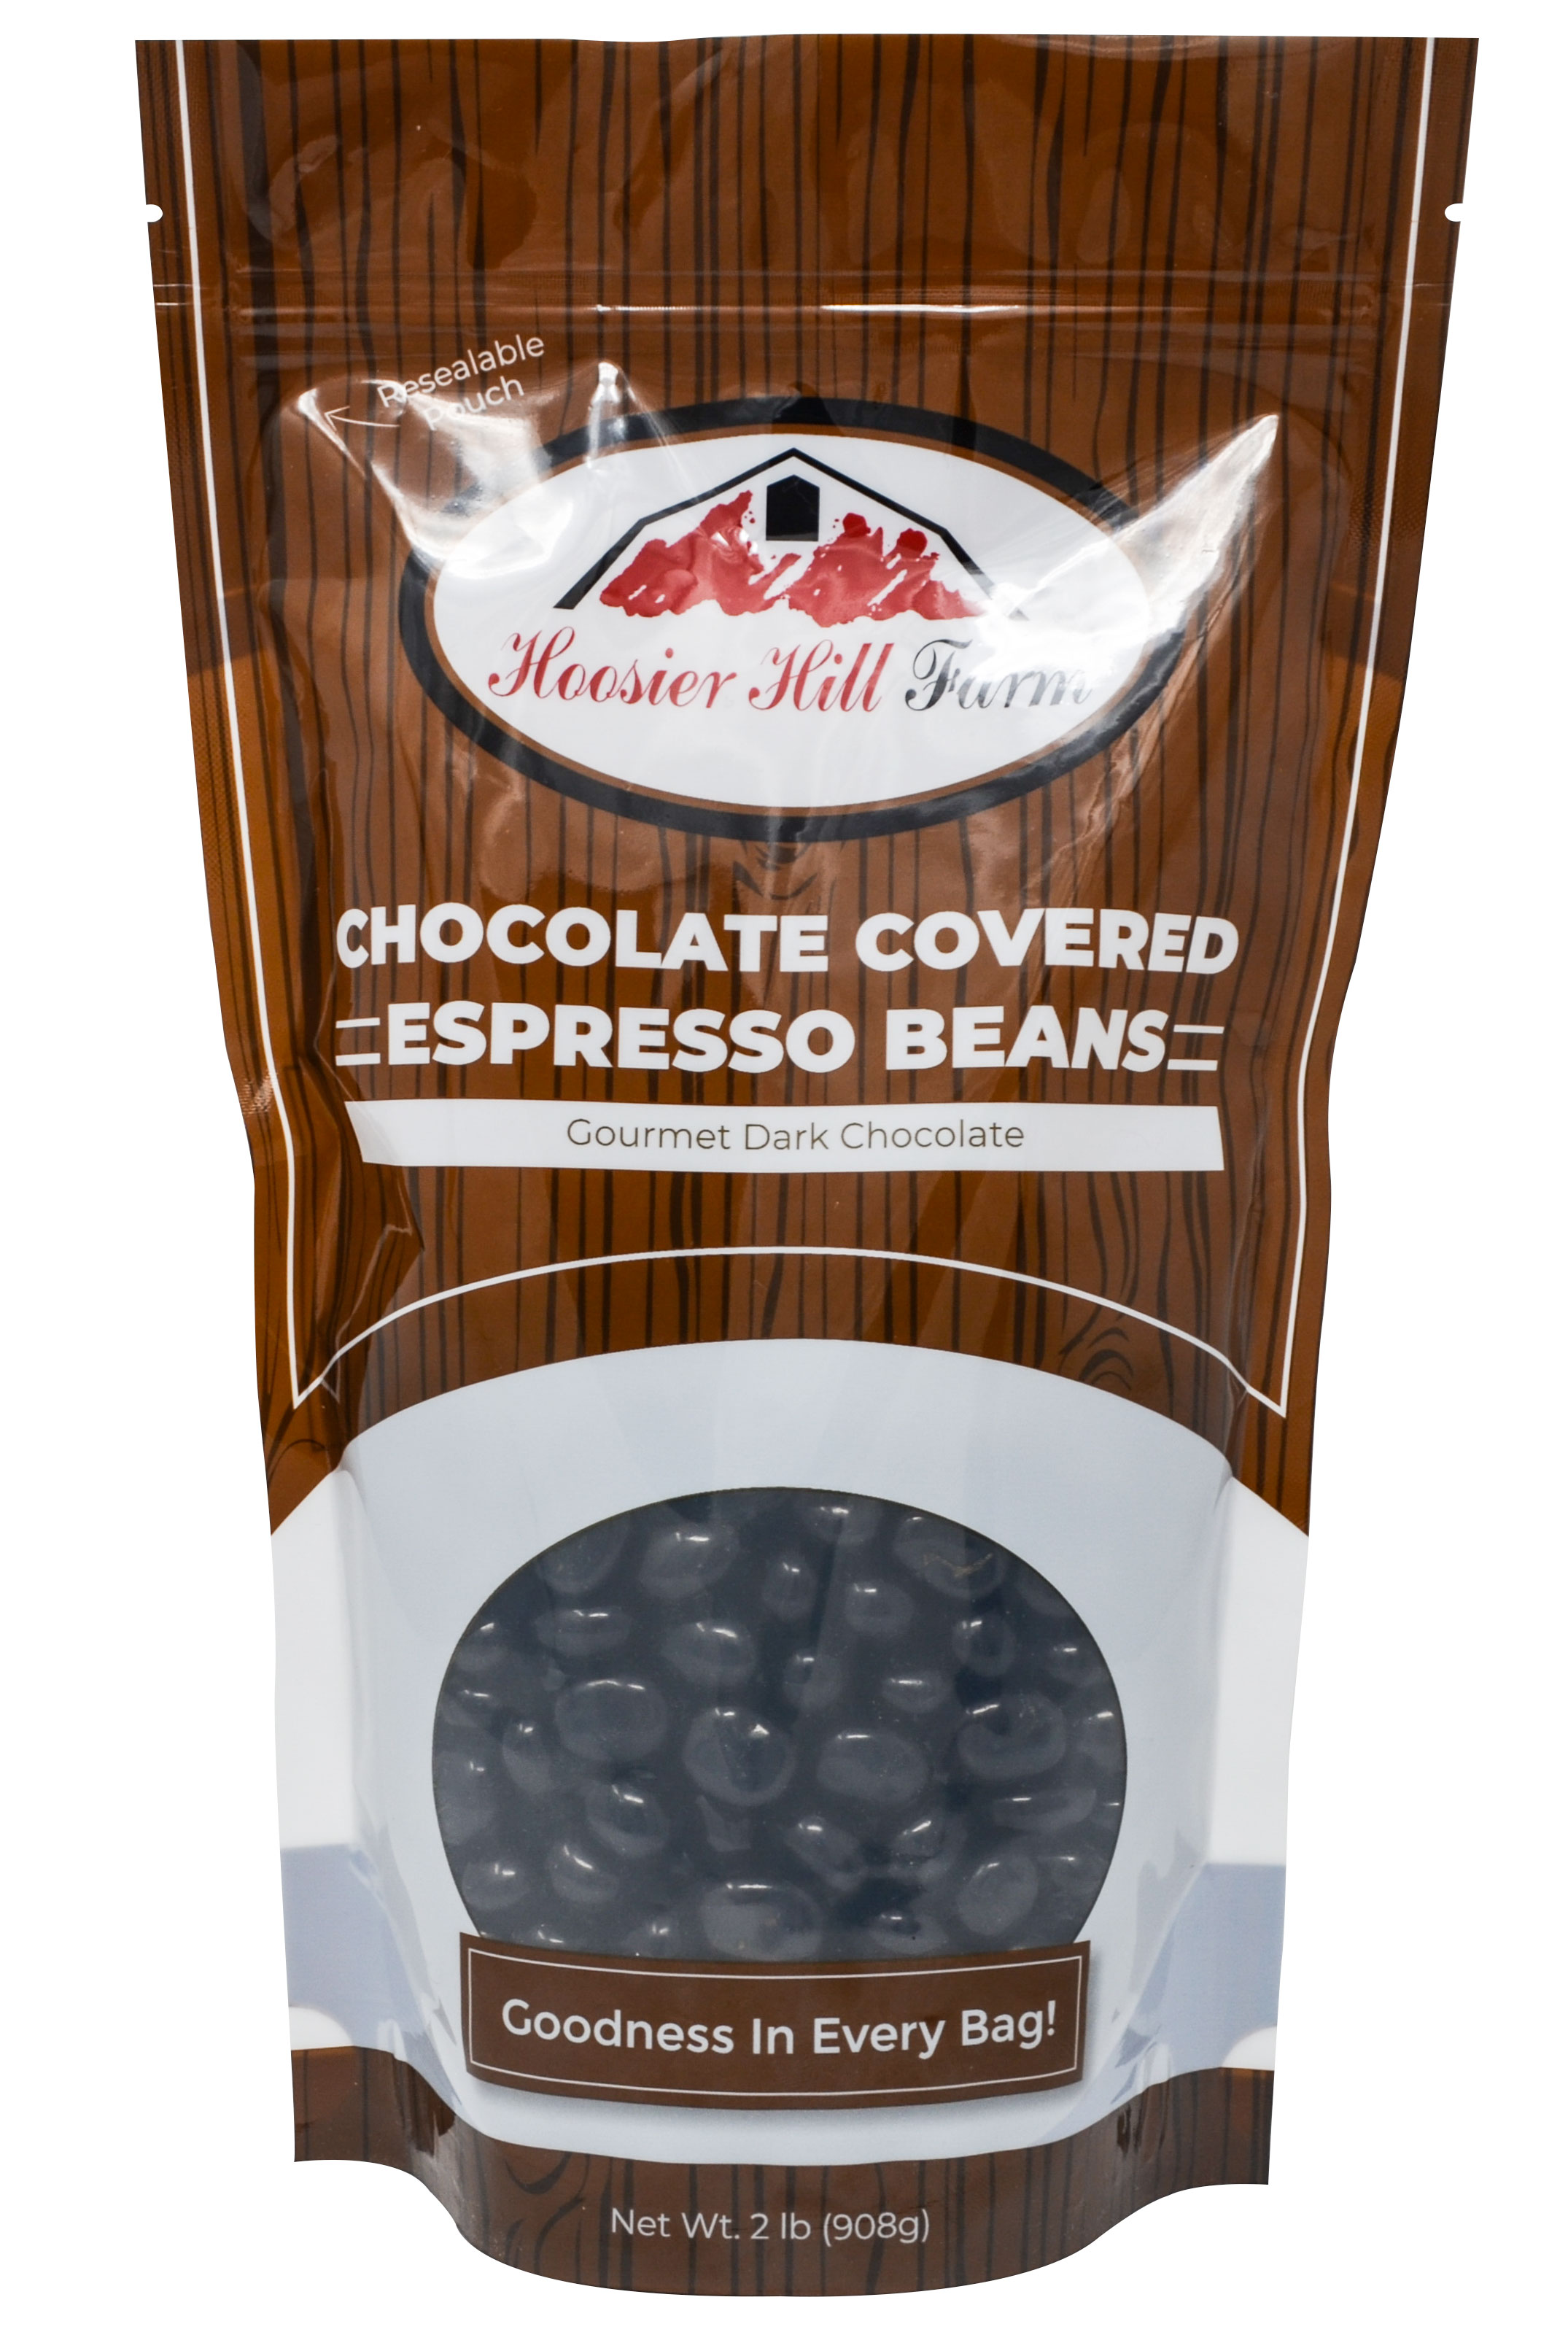 Dark Chocolate covered Espresso Beans (2 lb Bag)